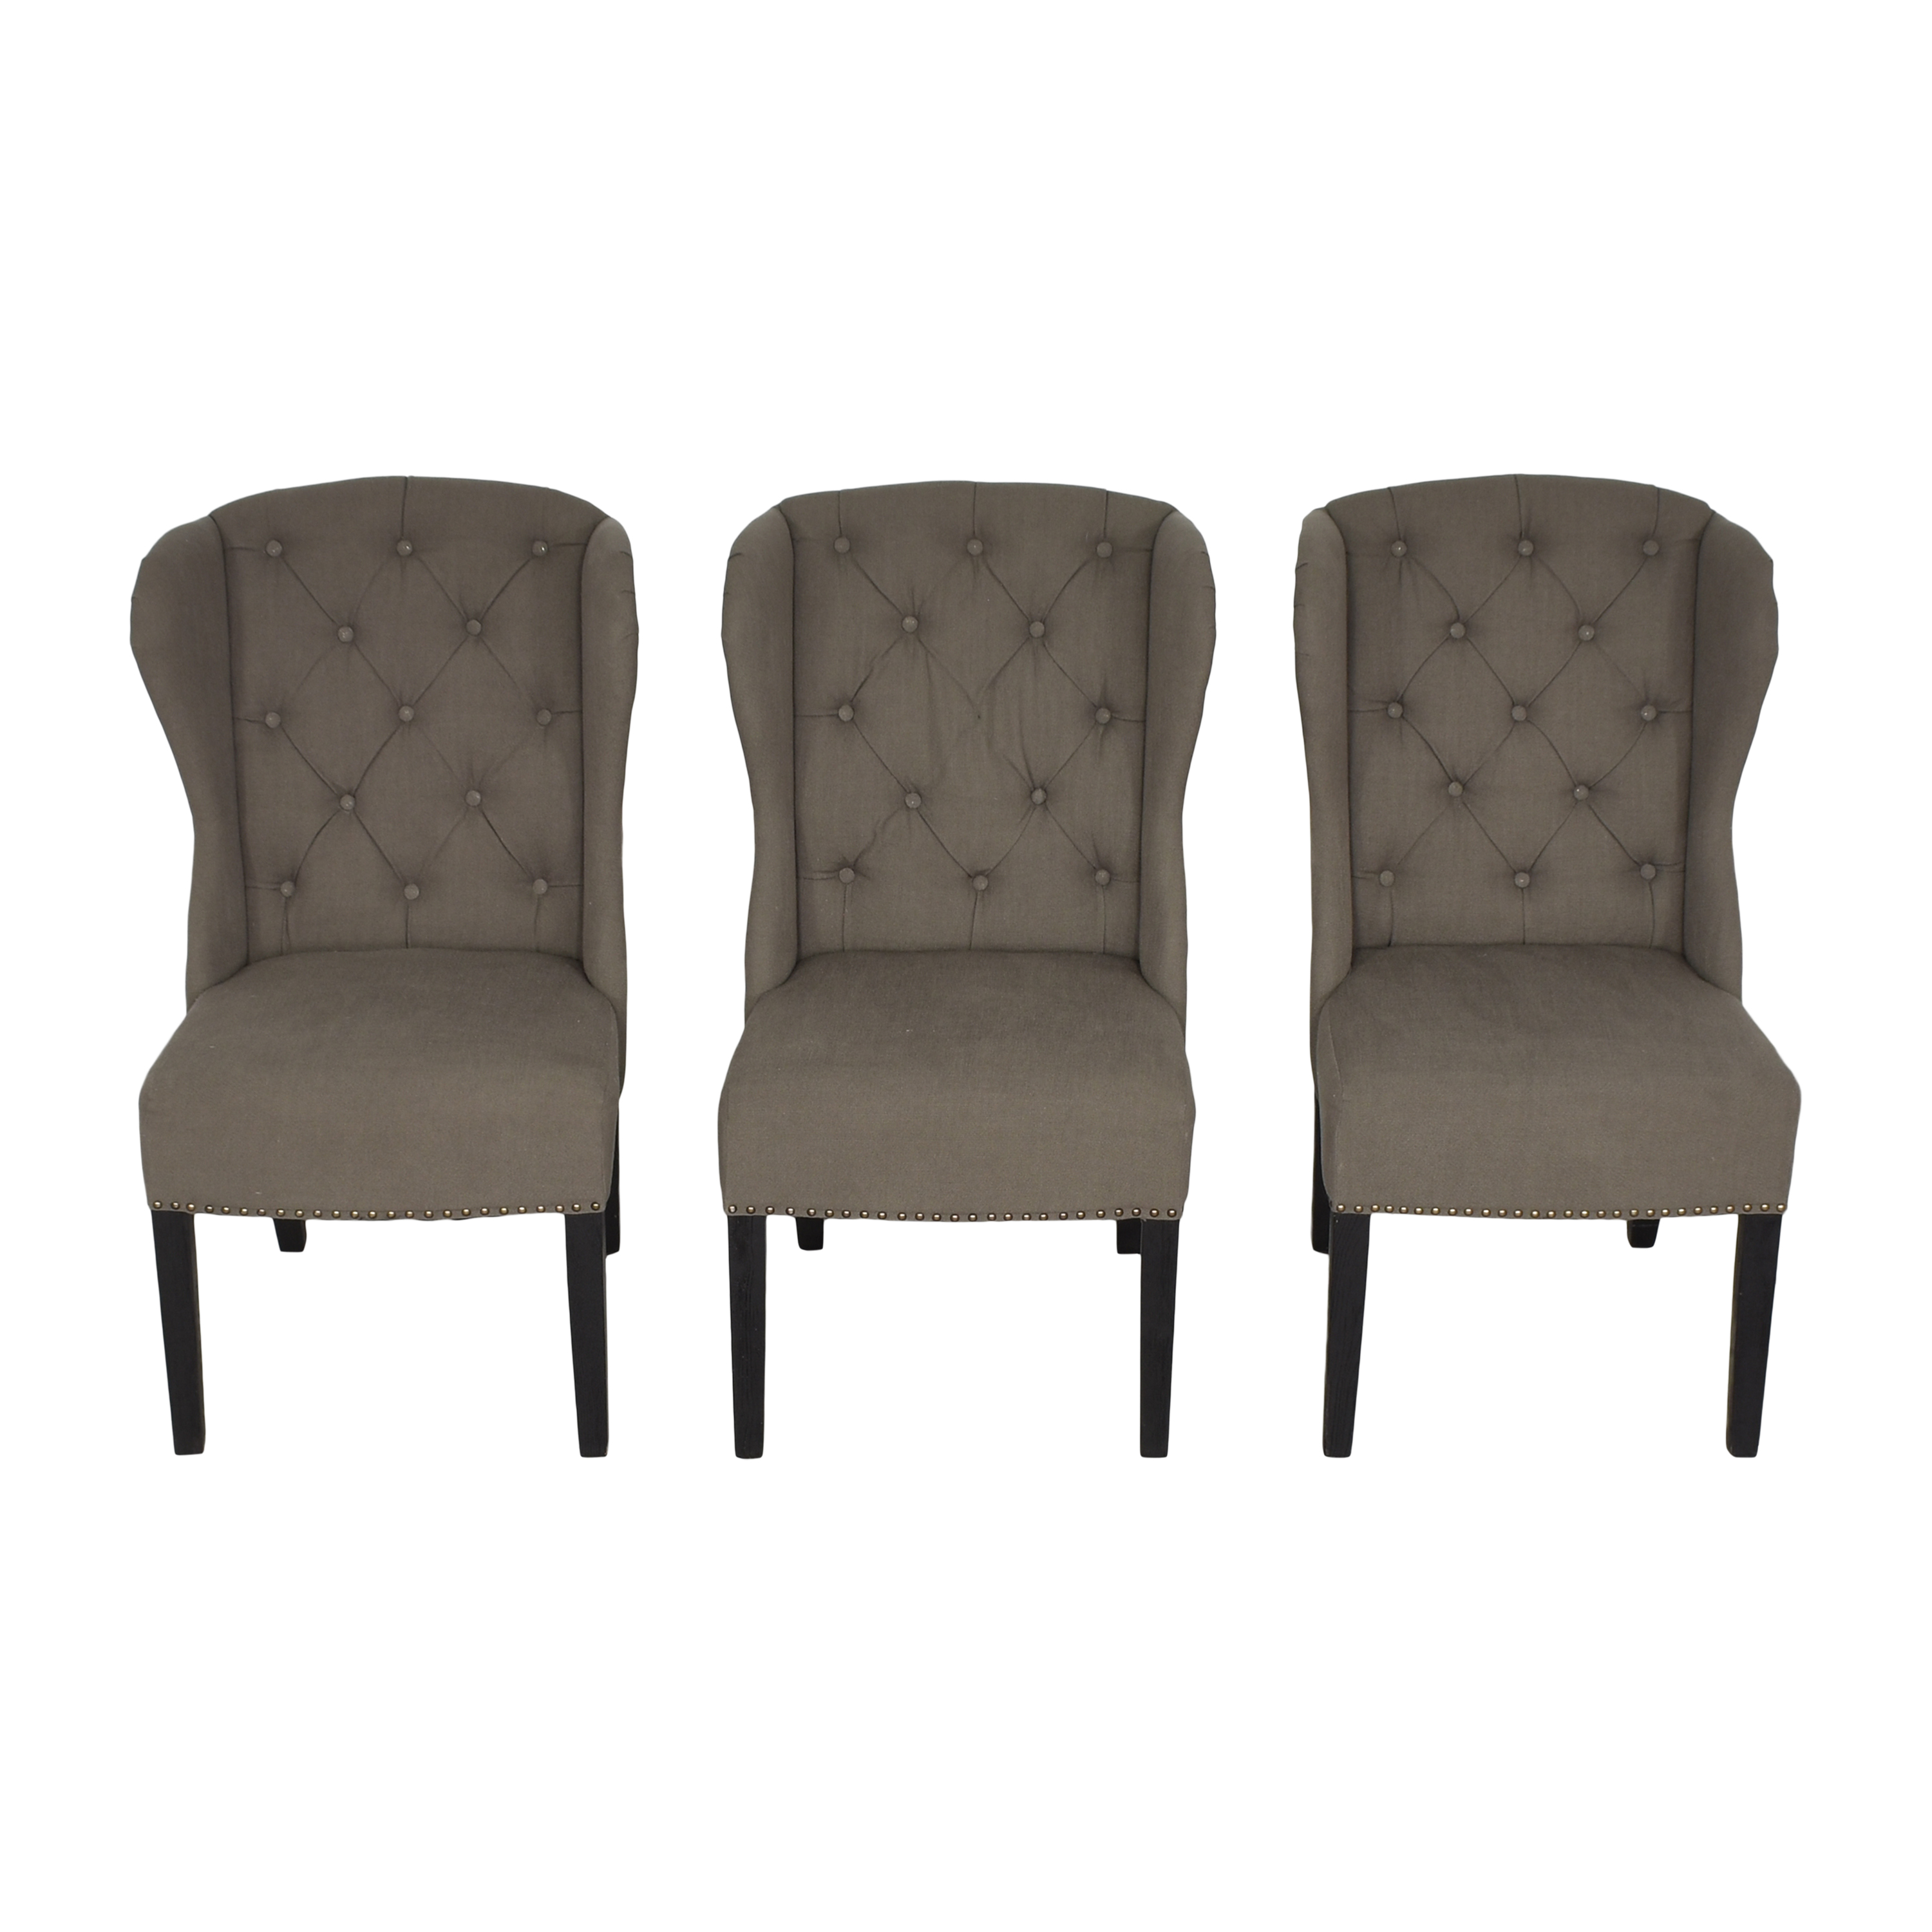 buy Arhaus Greyson Tufted Upholstered Dining Side Chairs Arhaus Dining Chairs